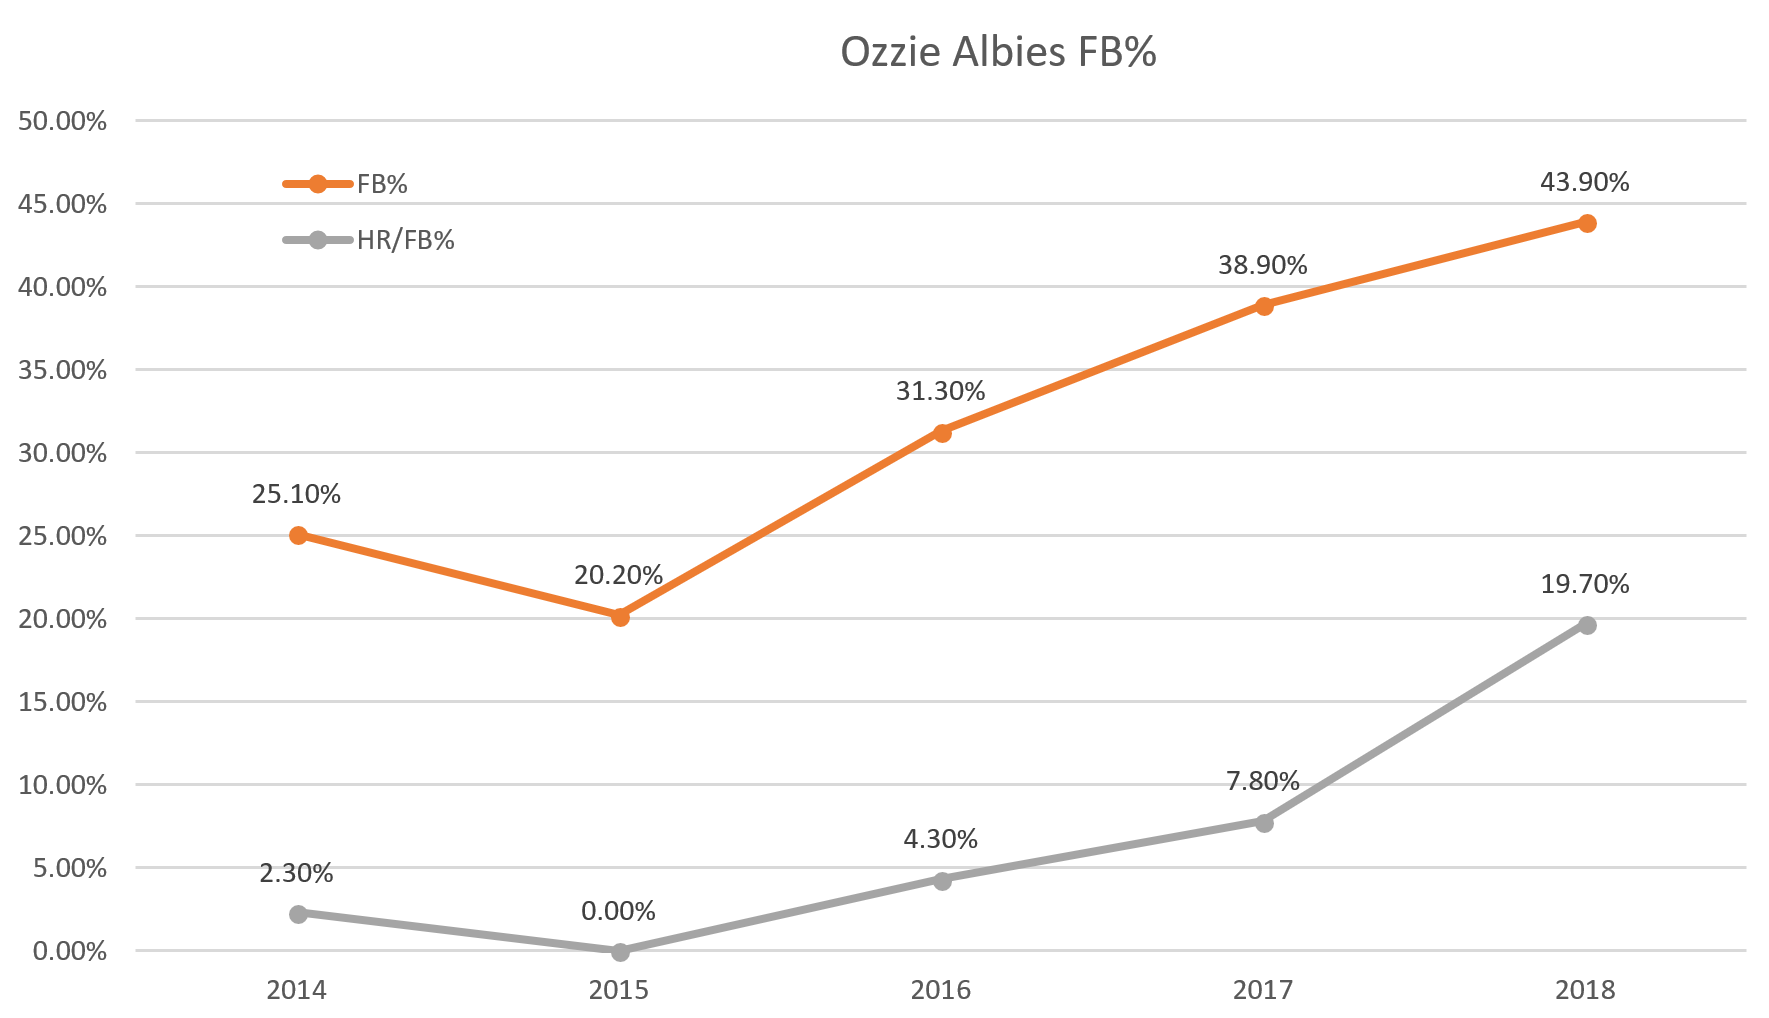 Ozzie Albies FB% and HR/FB%